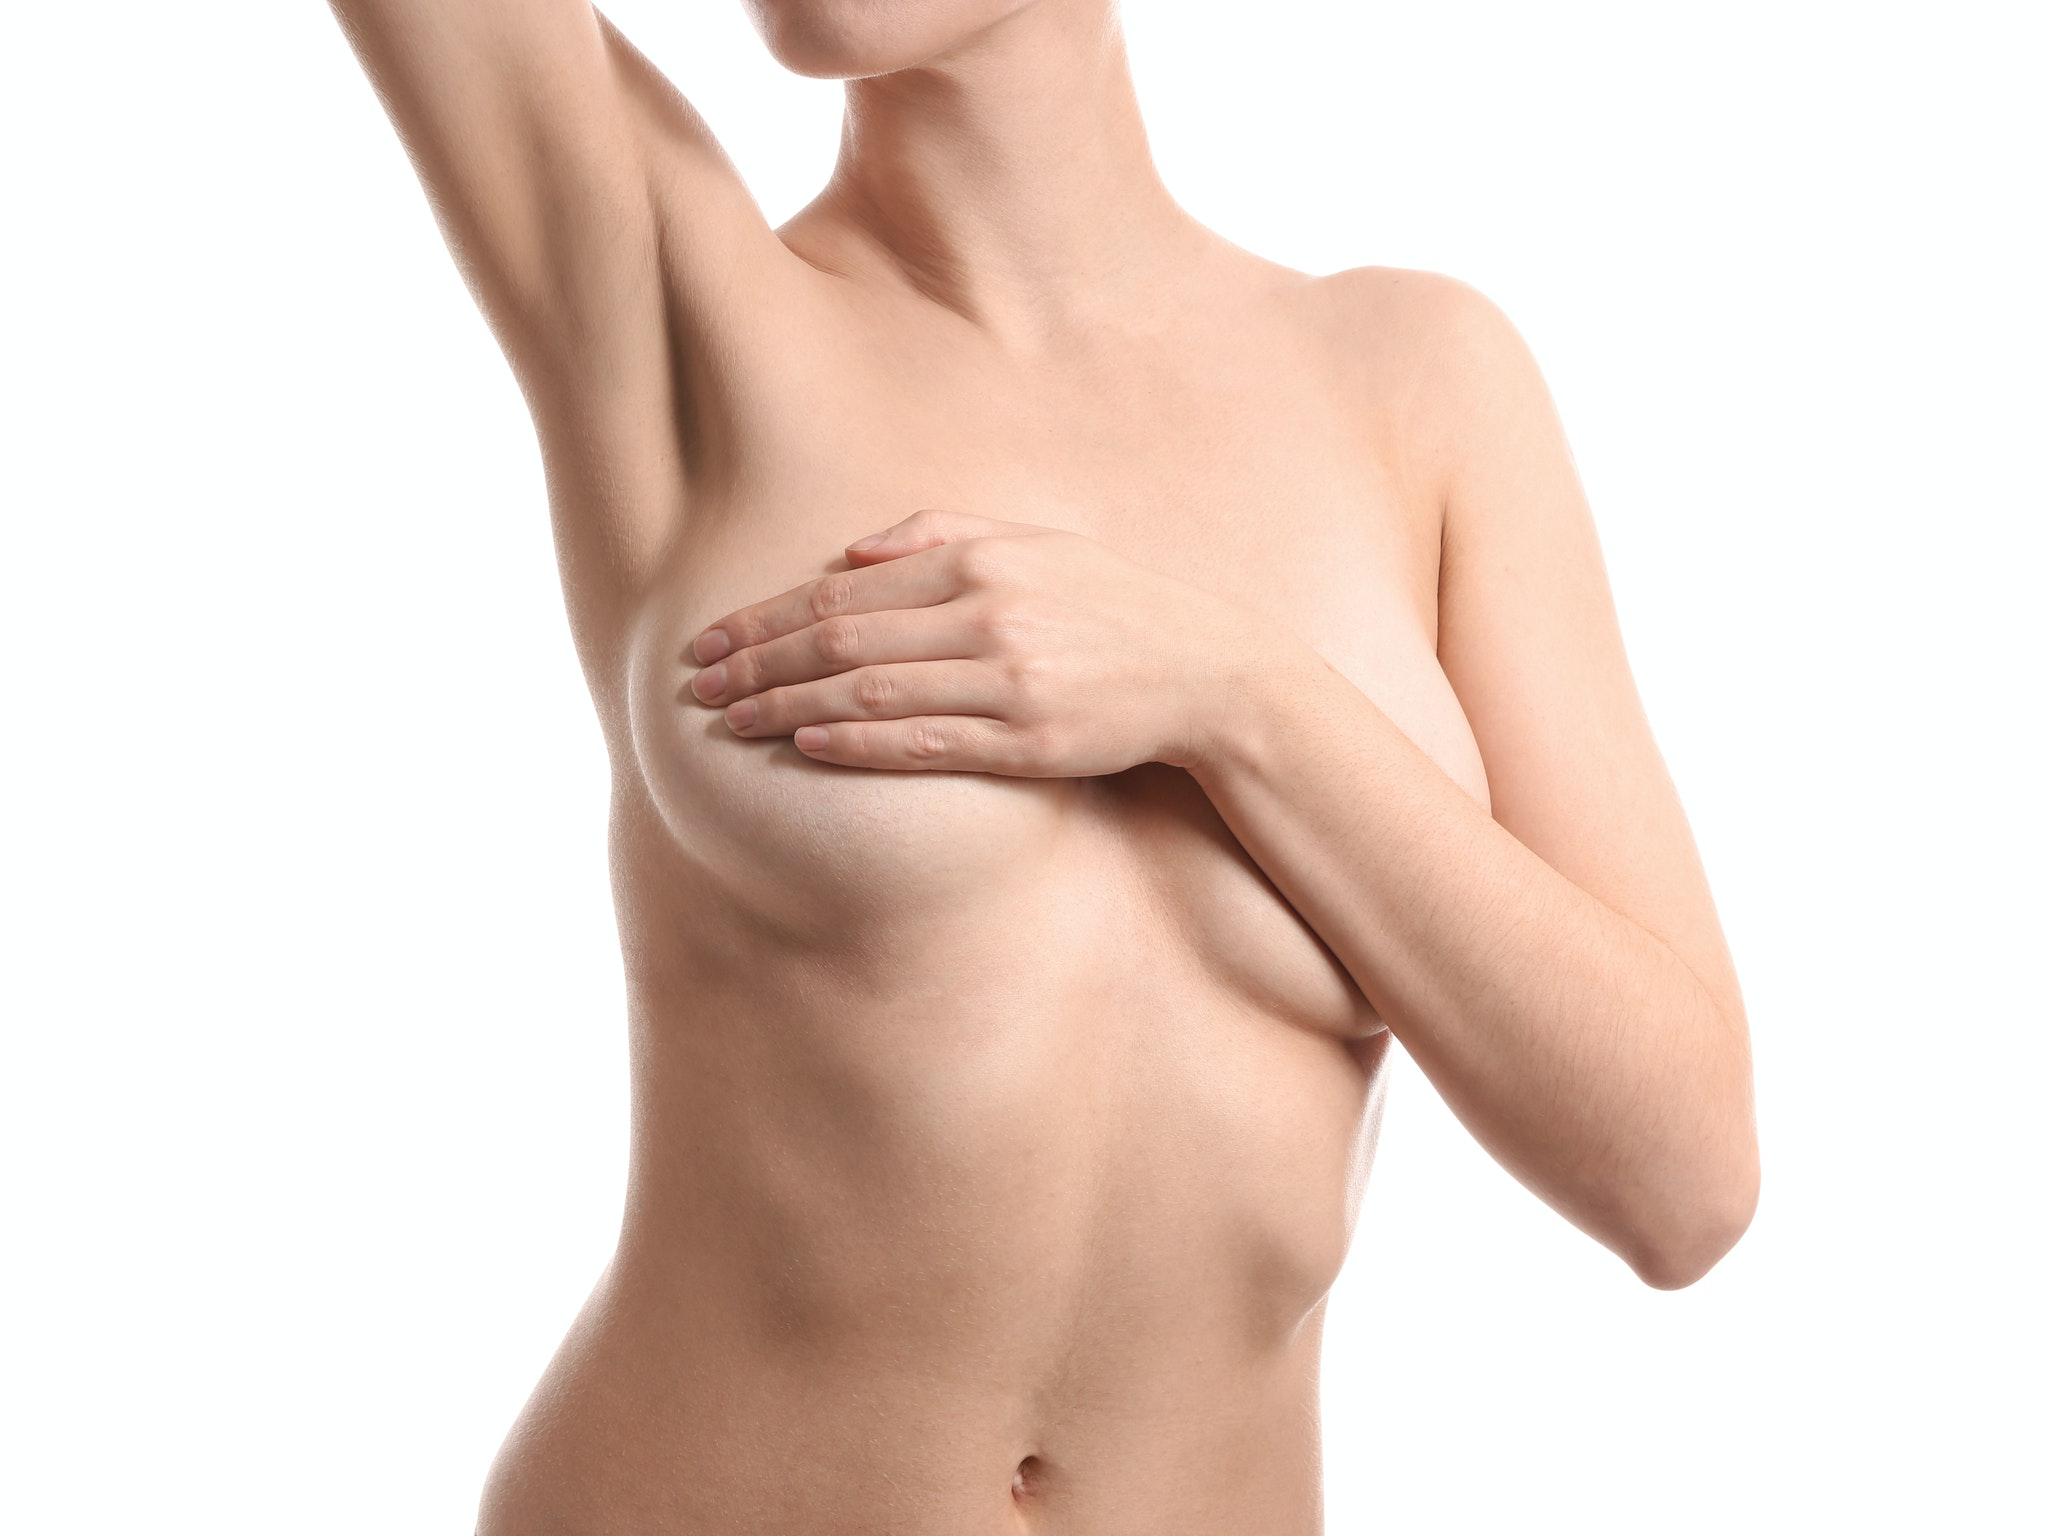 Breast Implants Gone Wrong: How Houstonians Can Easily Fix This Issue